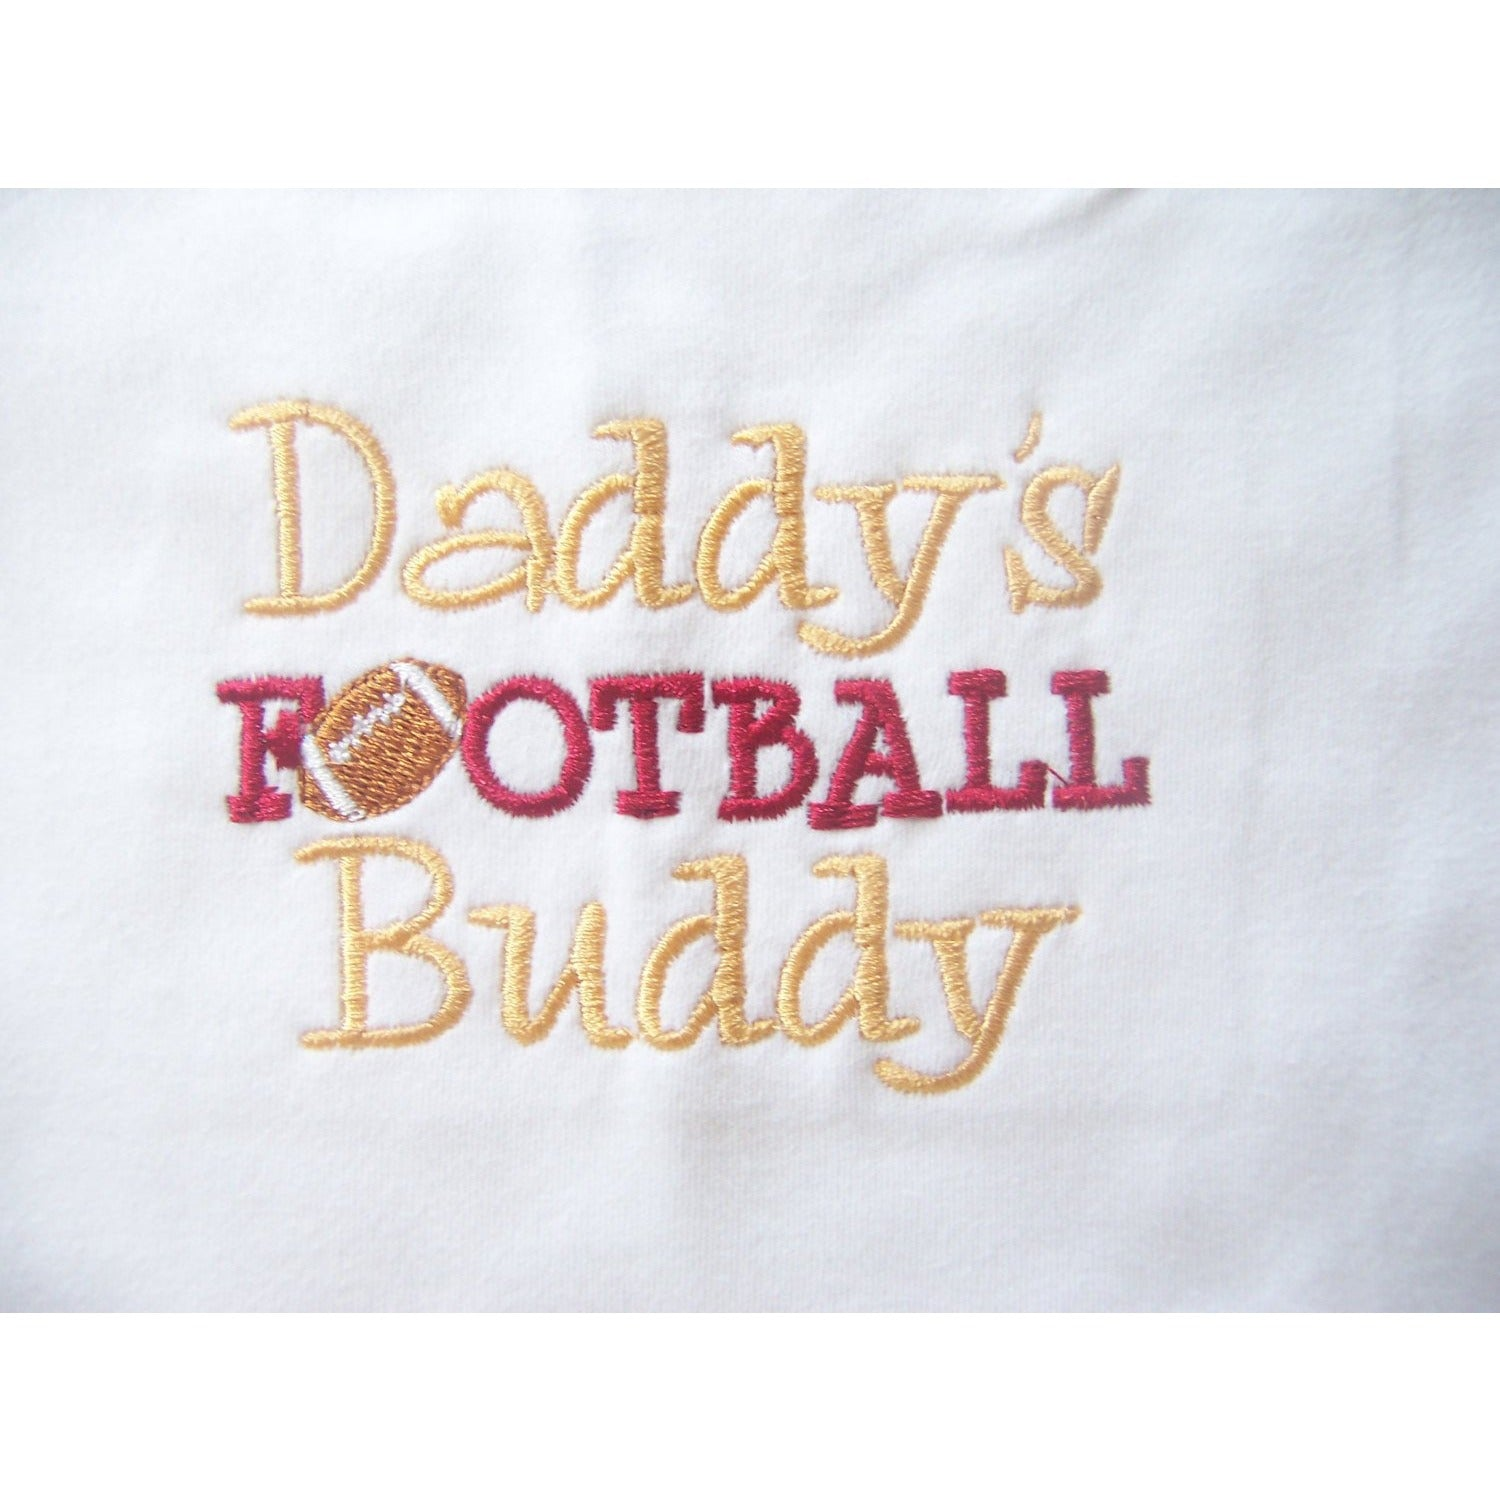 Personalized Monogrammed Children's Clothing, Footbal, Daddy's Football Buddy Shirt - Jennifer Noel Designs